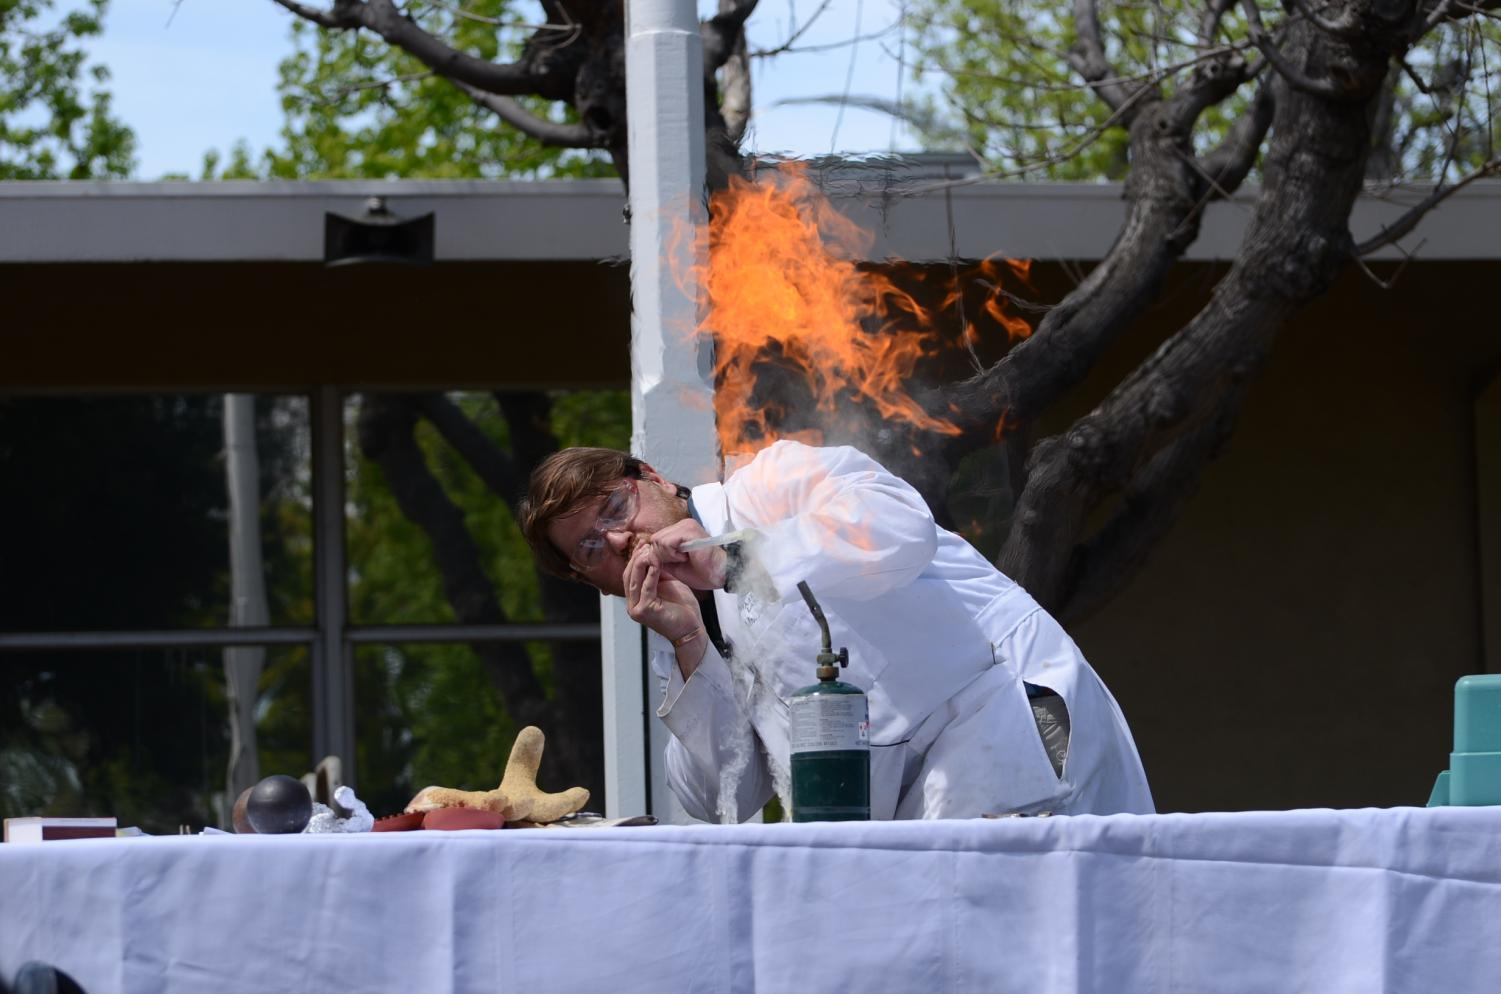 Upper+school+chemistry+teacher+Andrew+Irvine+blows+a+powder+above+a+flame+to+create+a+burst+of+fire.+The+annual+chemistry+%22magic+show%22+is+one+of+the+symposium%27s+most+beloved+traditions.